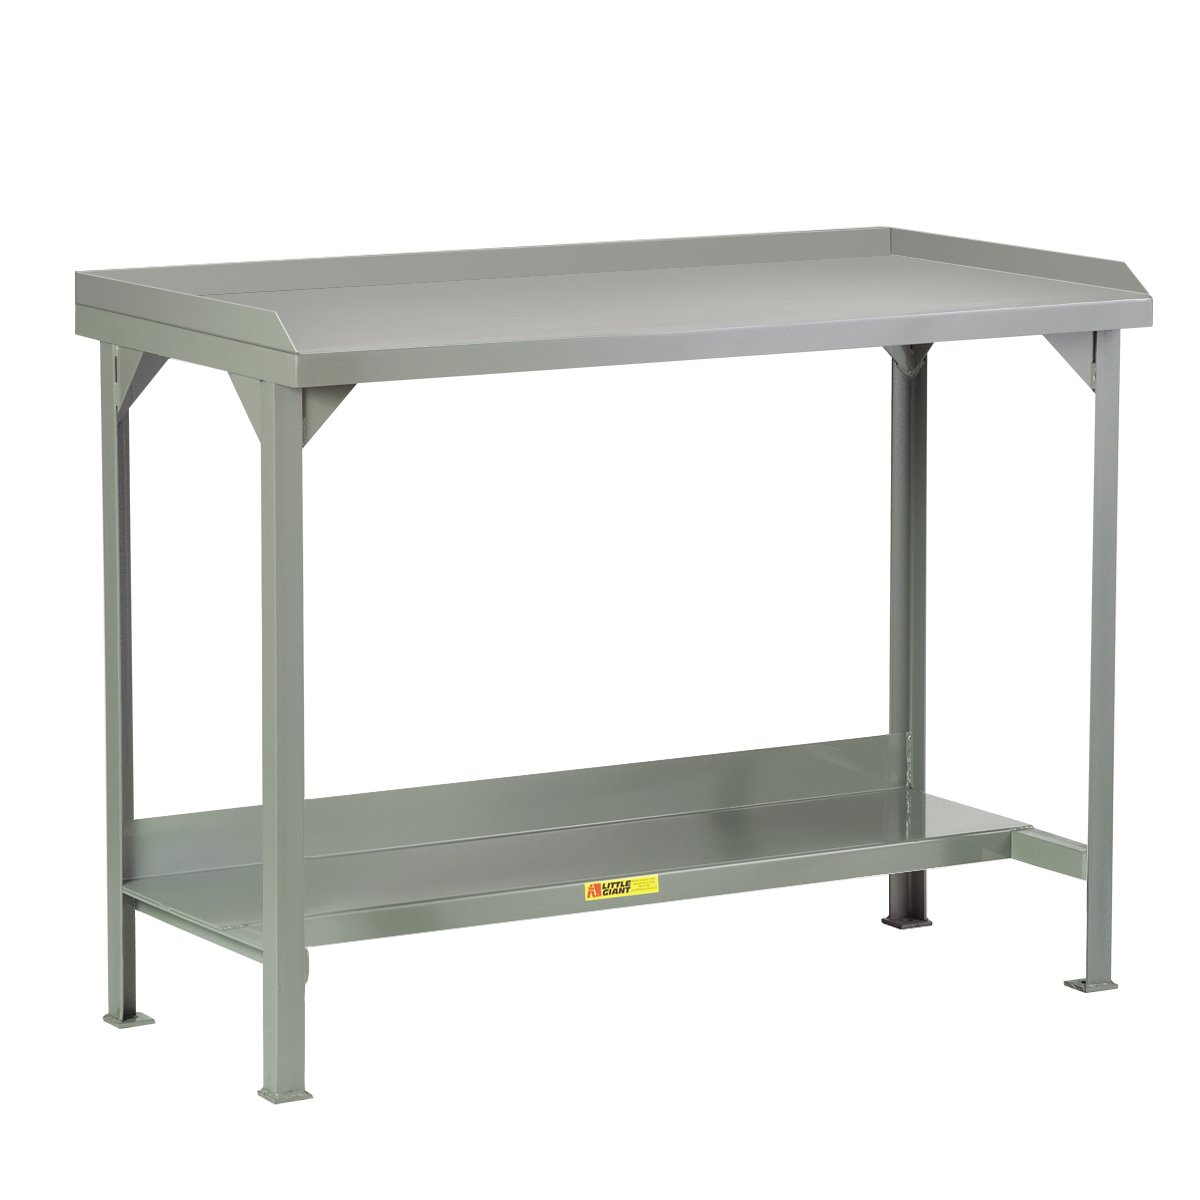 Little Giant WSL2-2460-AH Welded Steel and Superlatite with Back E Workbench Bombing free shipping